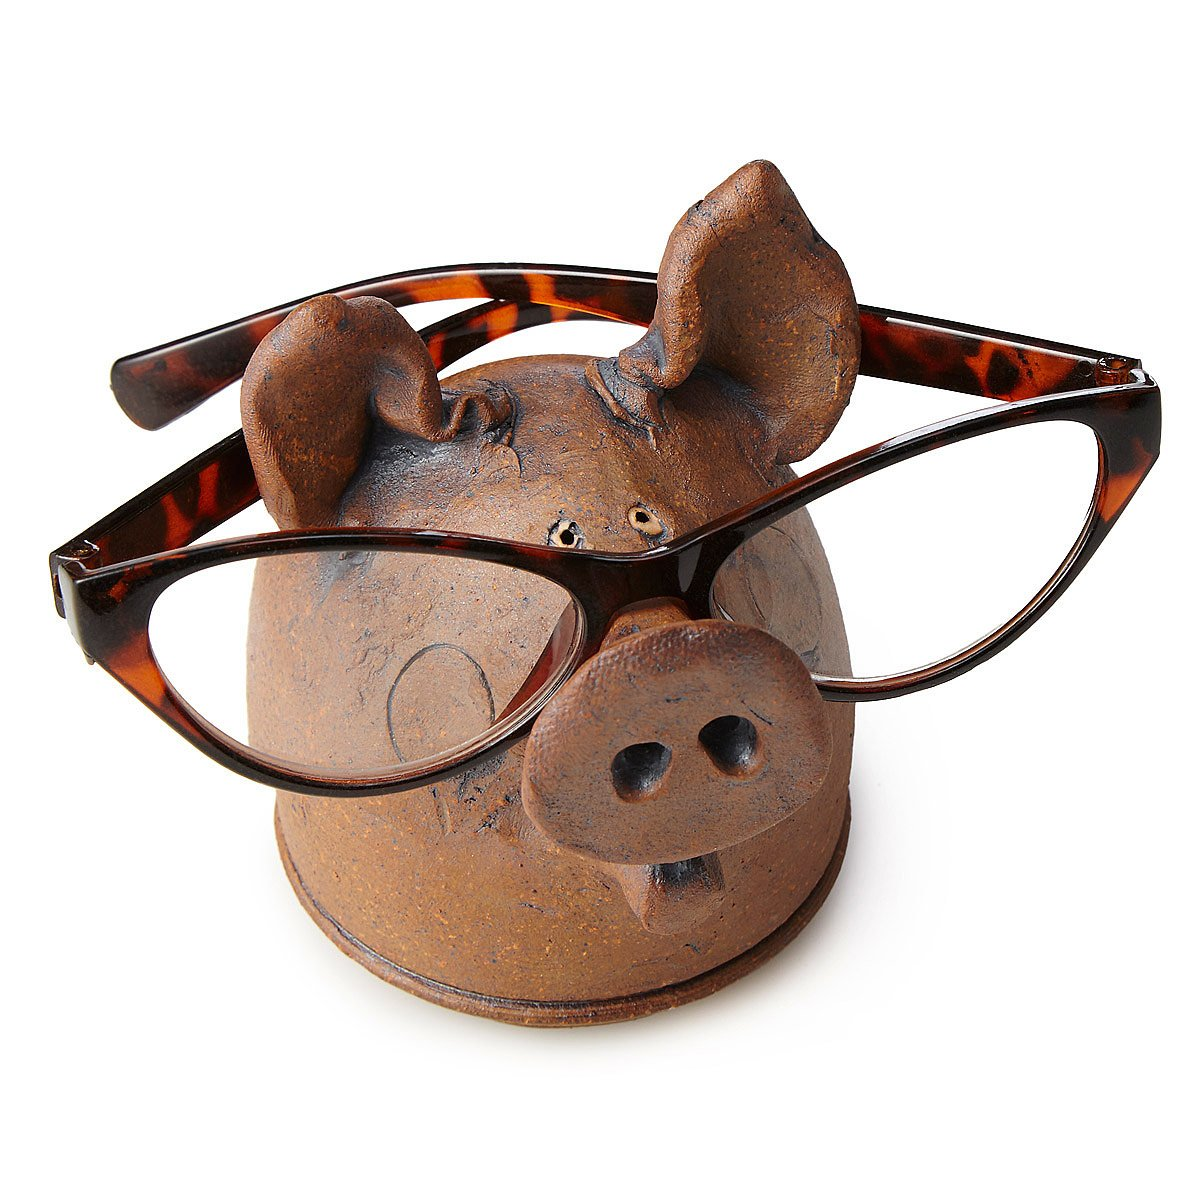 Eyeglass Frame Holders : Pig Eyeglasses Holder eyeglasses holder, pig art ...